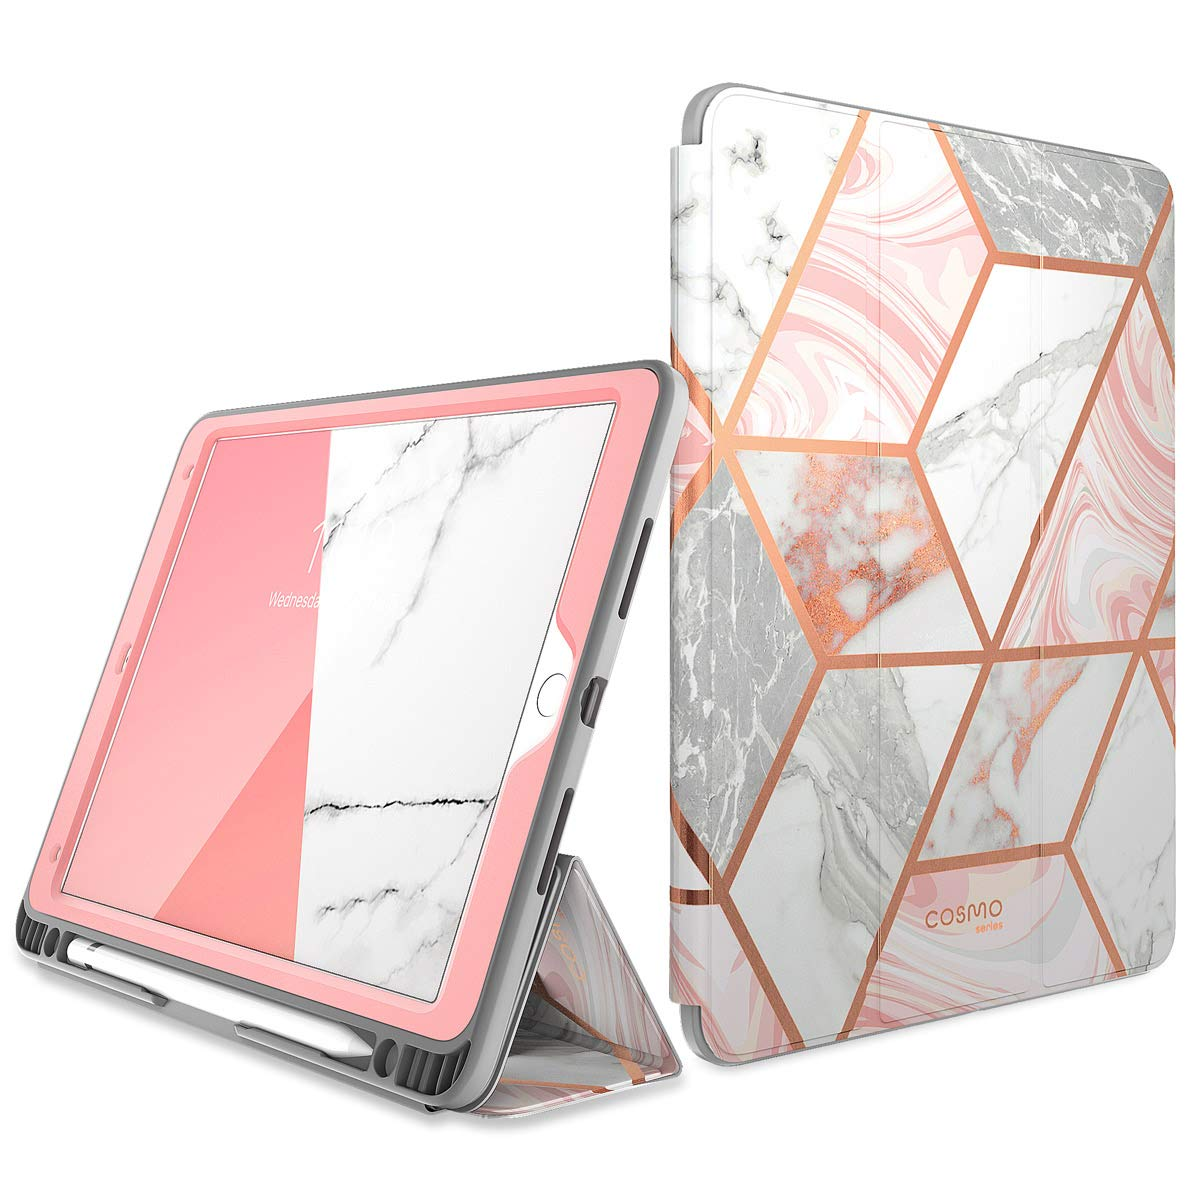 """i-Blason Cosmo Case for iPad Air 3 10.5"""" 2019 (3rd Gen) / iPad Pro 10.5 2017, [Built-in Screen Protector] Trifold Stand Protective Case Cover with Pencil Holder and Auto Sleep/Wake, Marble, 10.5"""""""